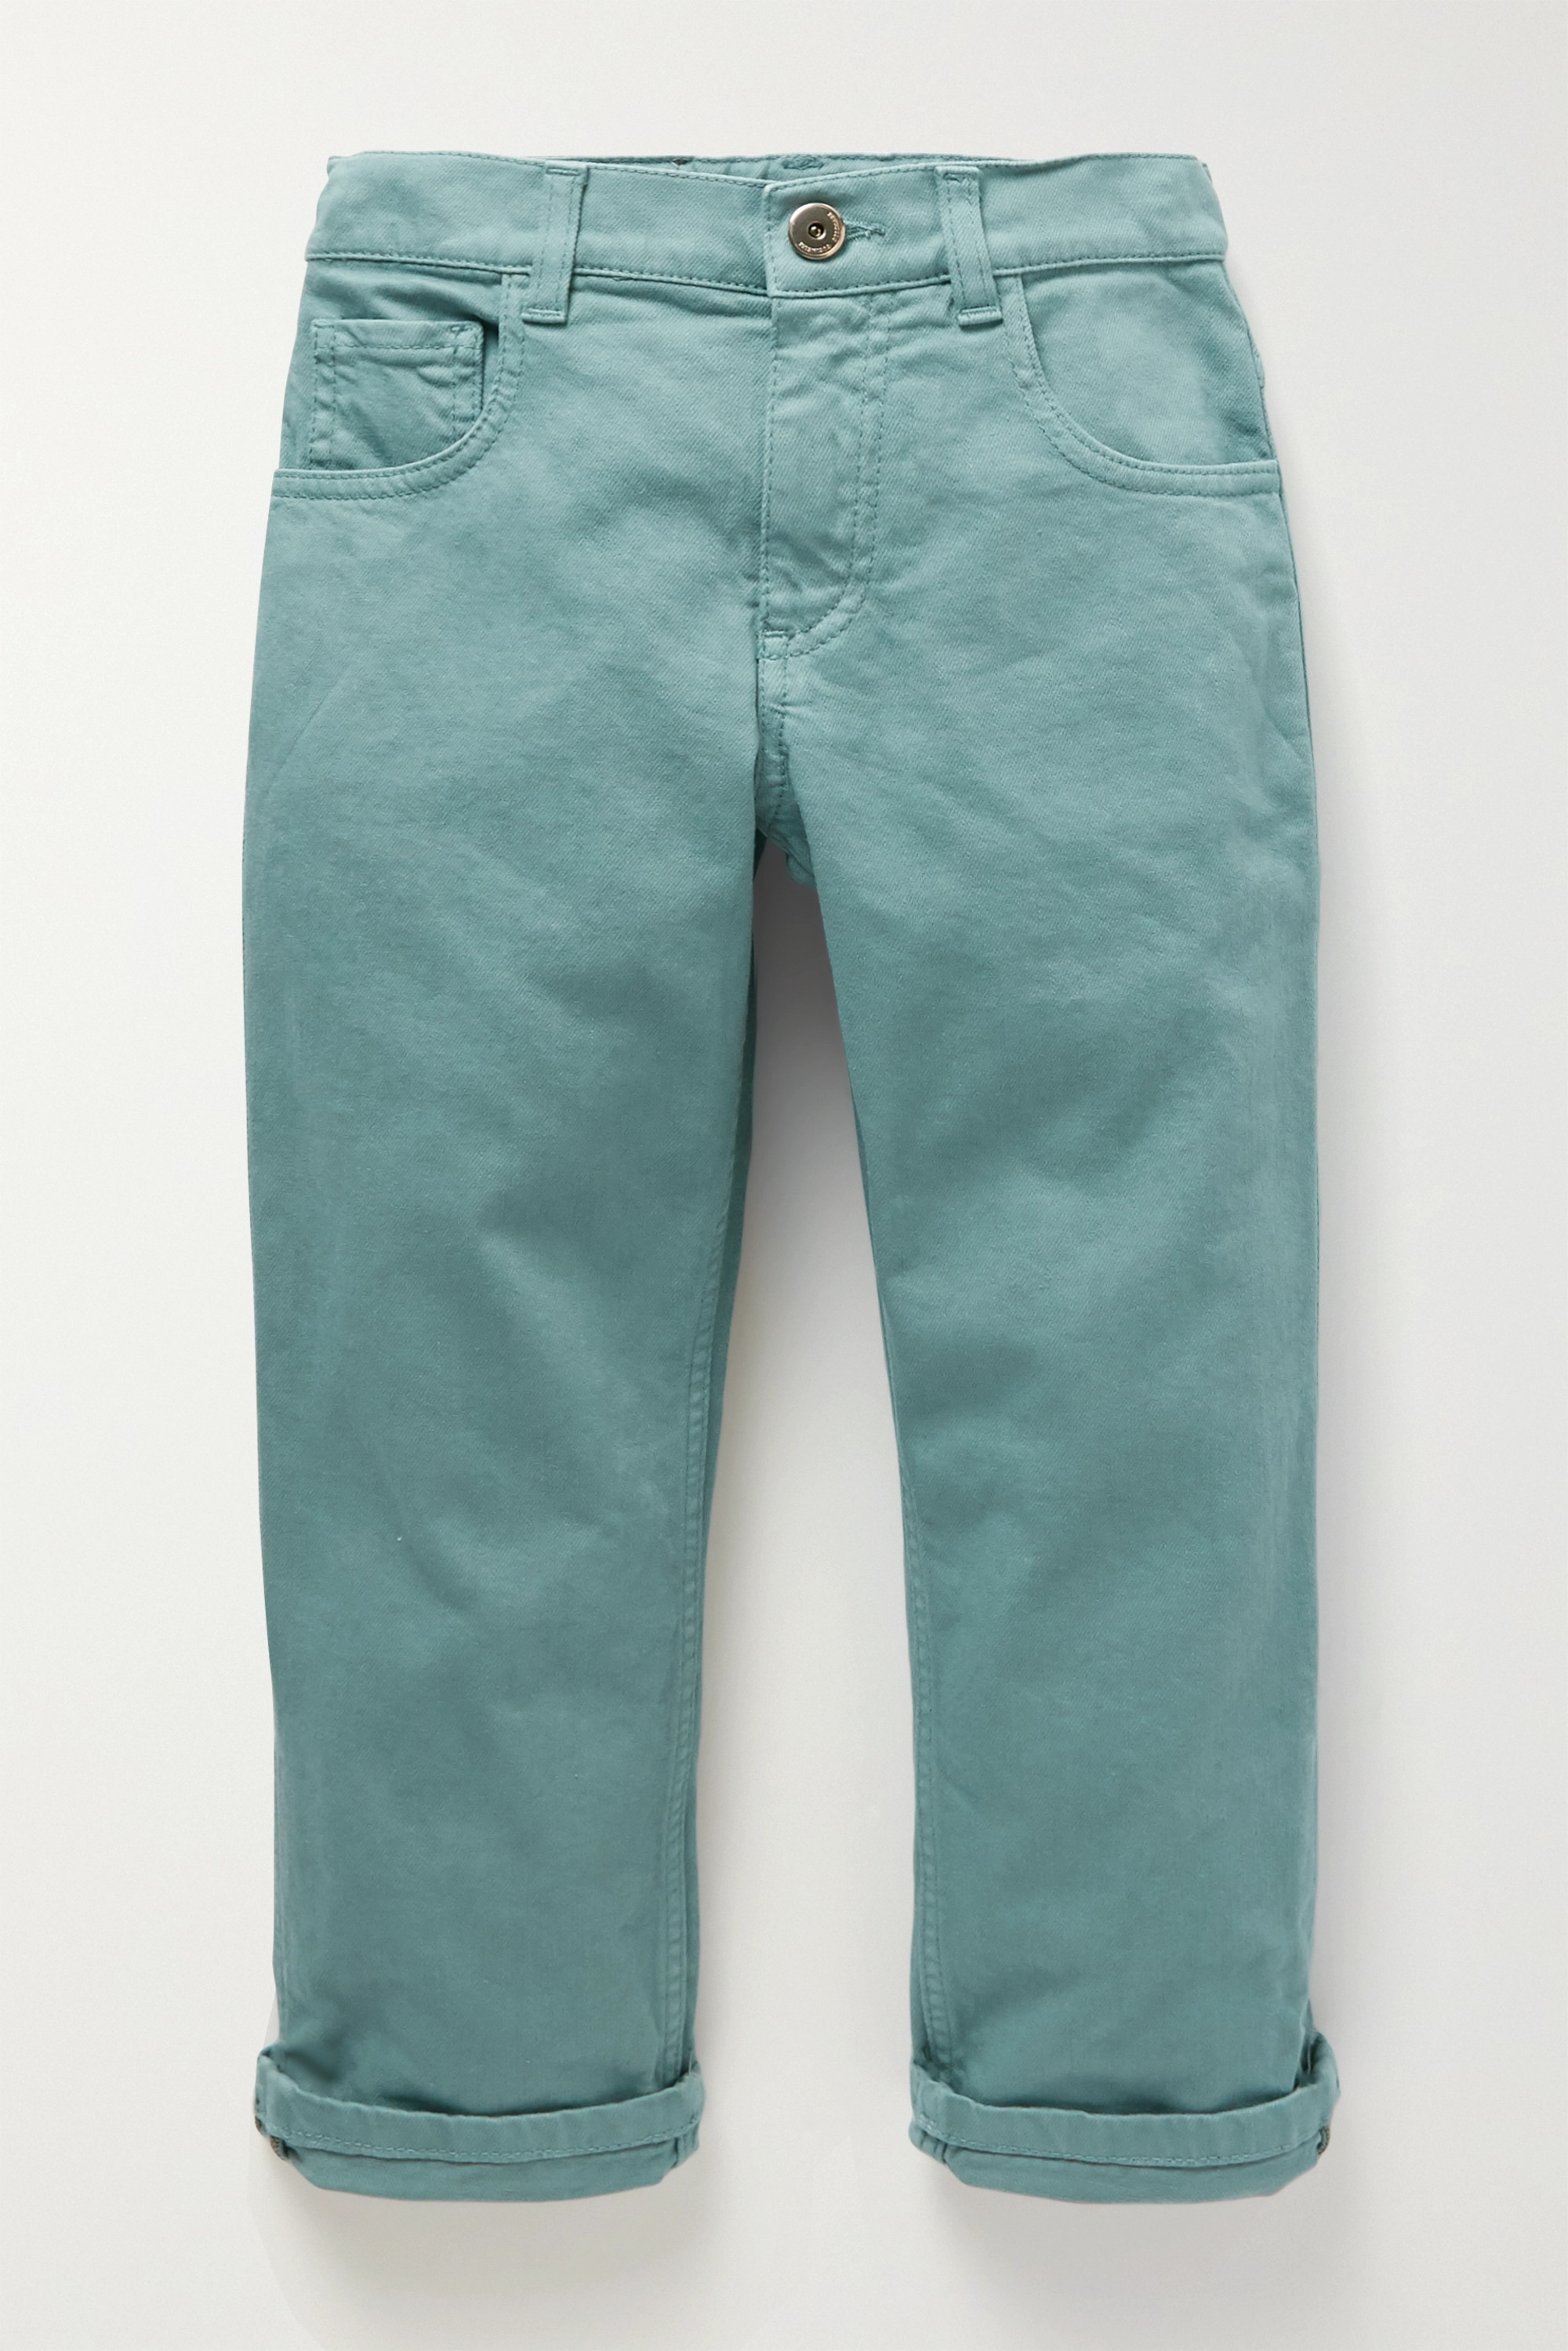 Brunello Cucinelli Kids Ages 4 - 6 bead-embellished jeans